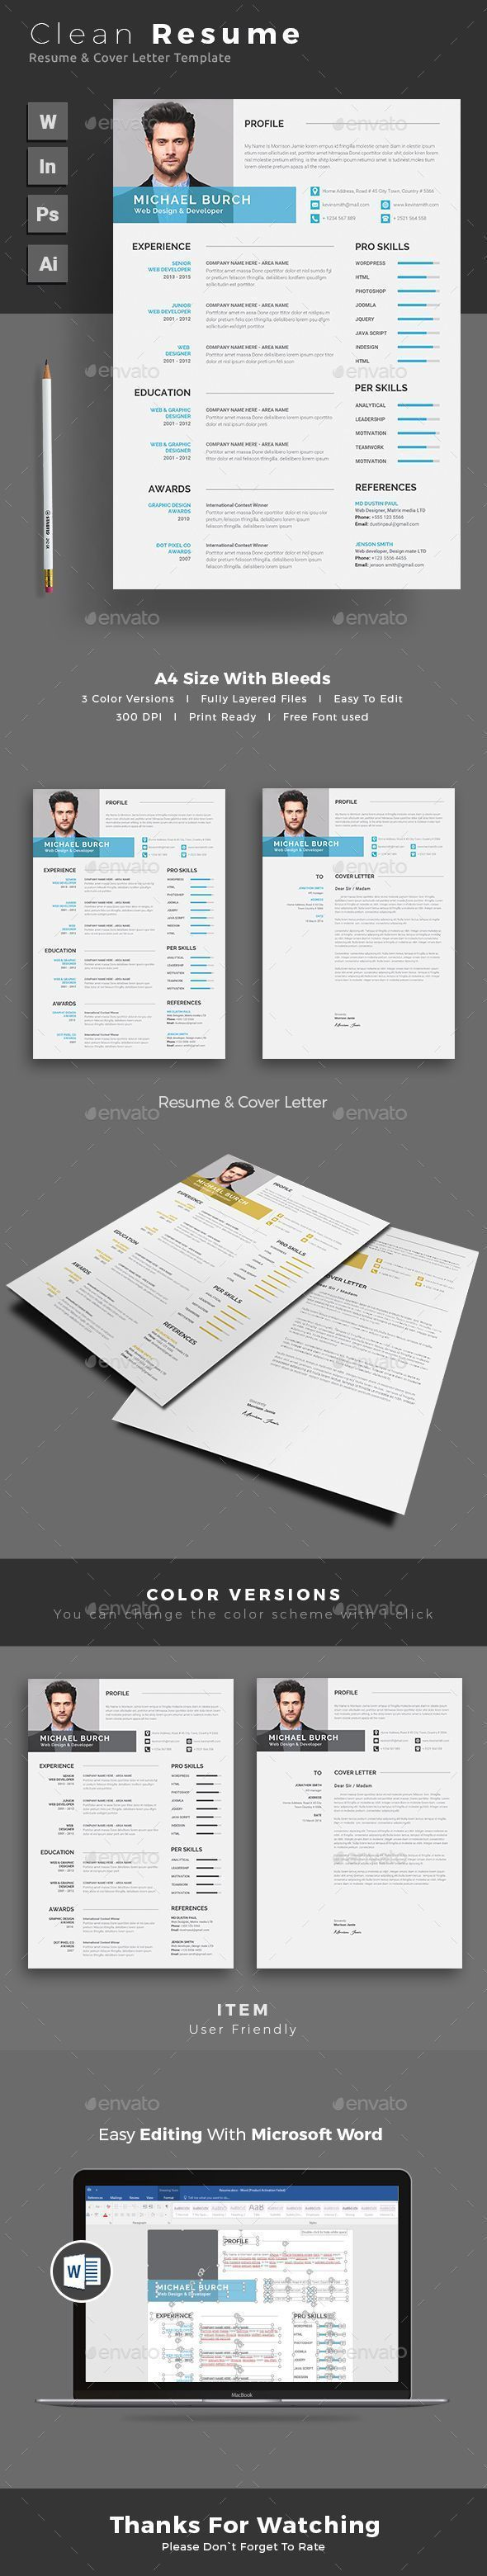 Resume 30 best Good Job images on